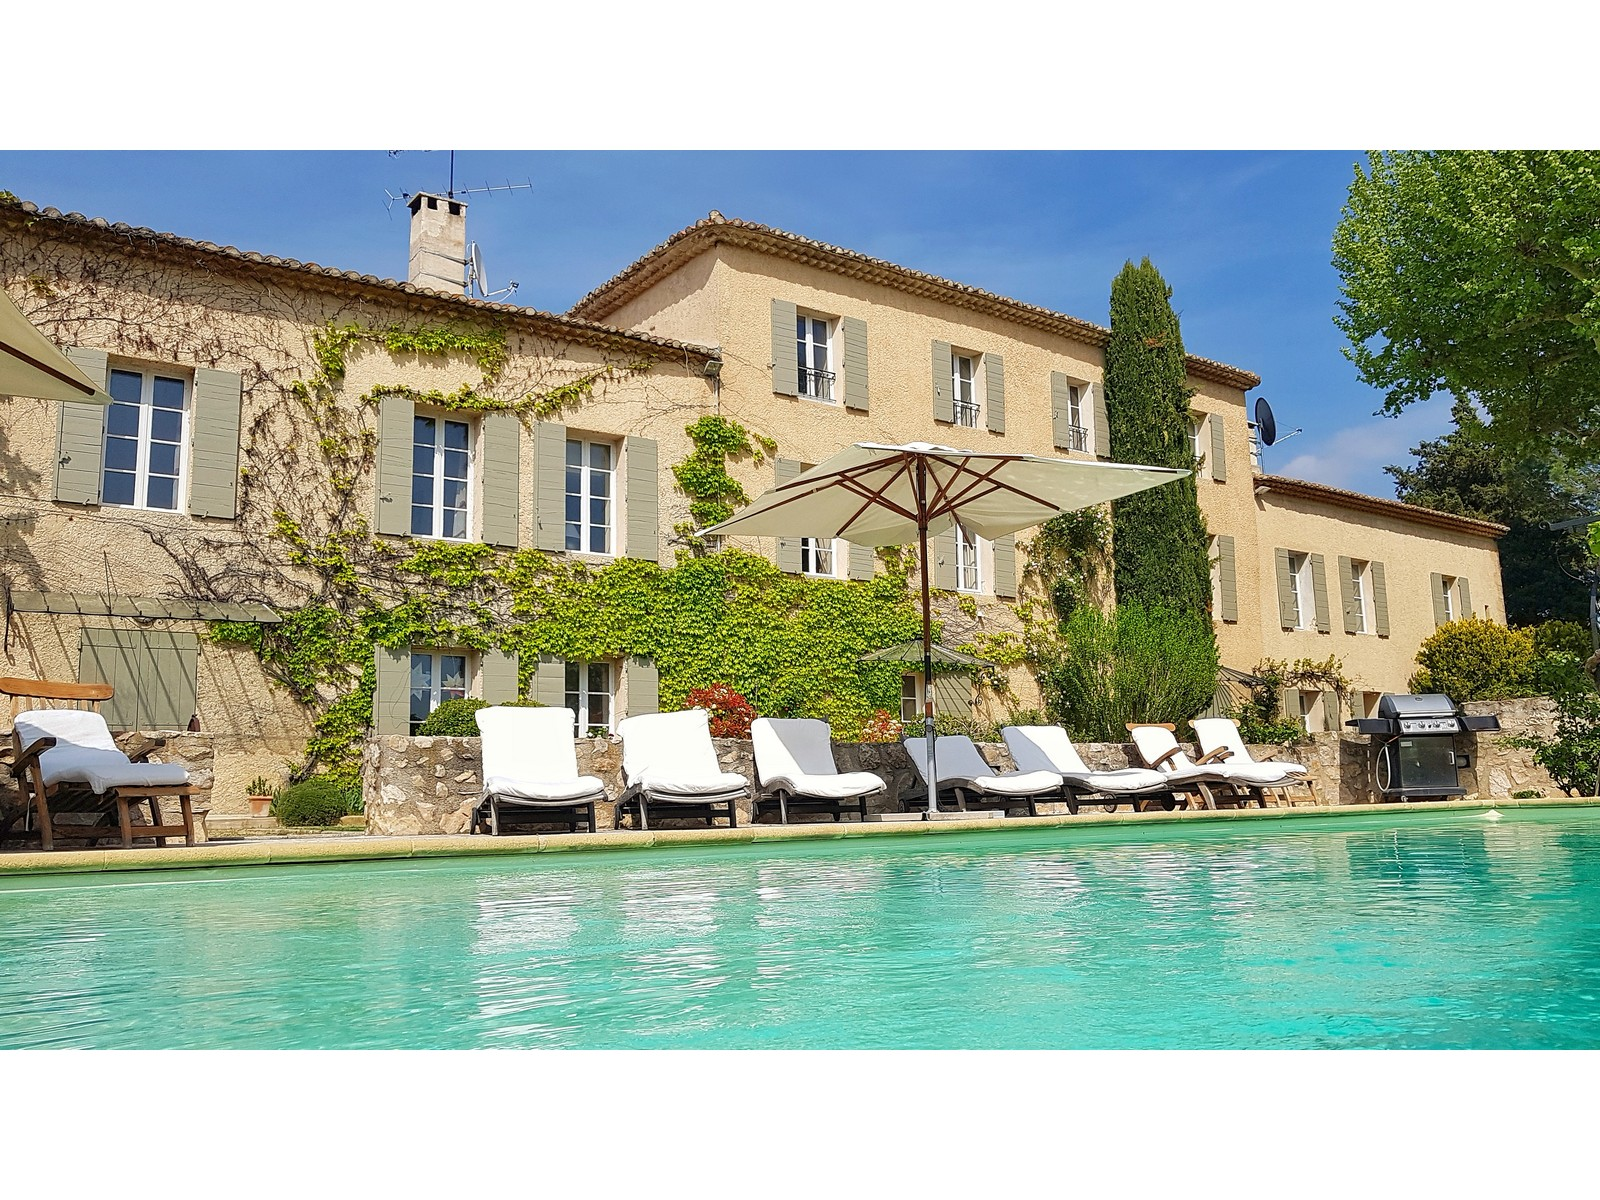 Ferme de la vallee, Classic and comfortable country house in Aix-en-Provence, in the Provence, France  with private pool for 14 persons...